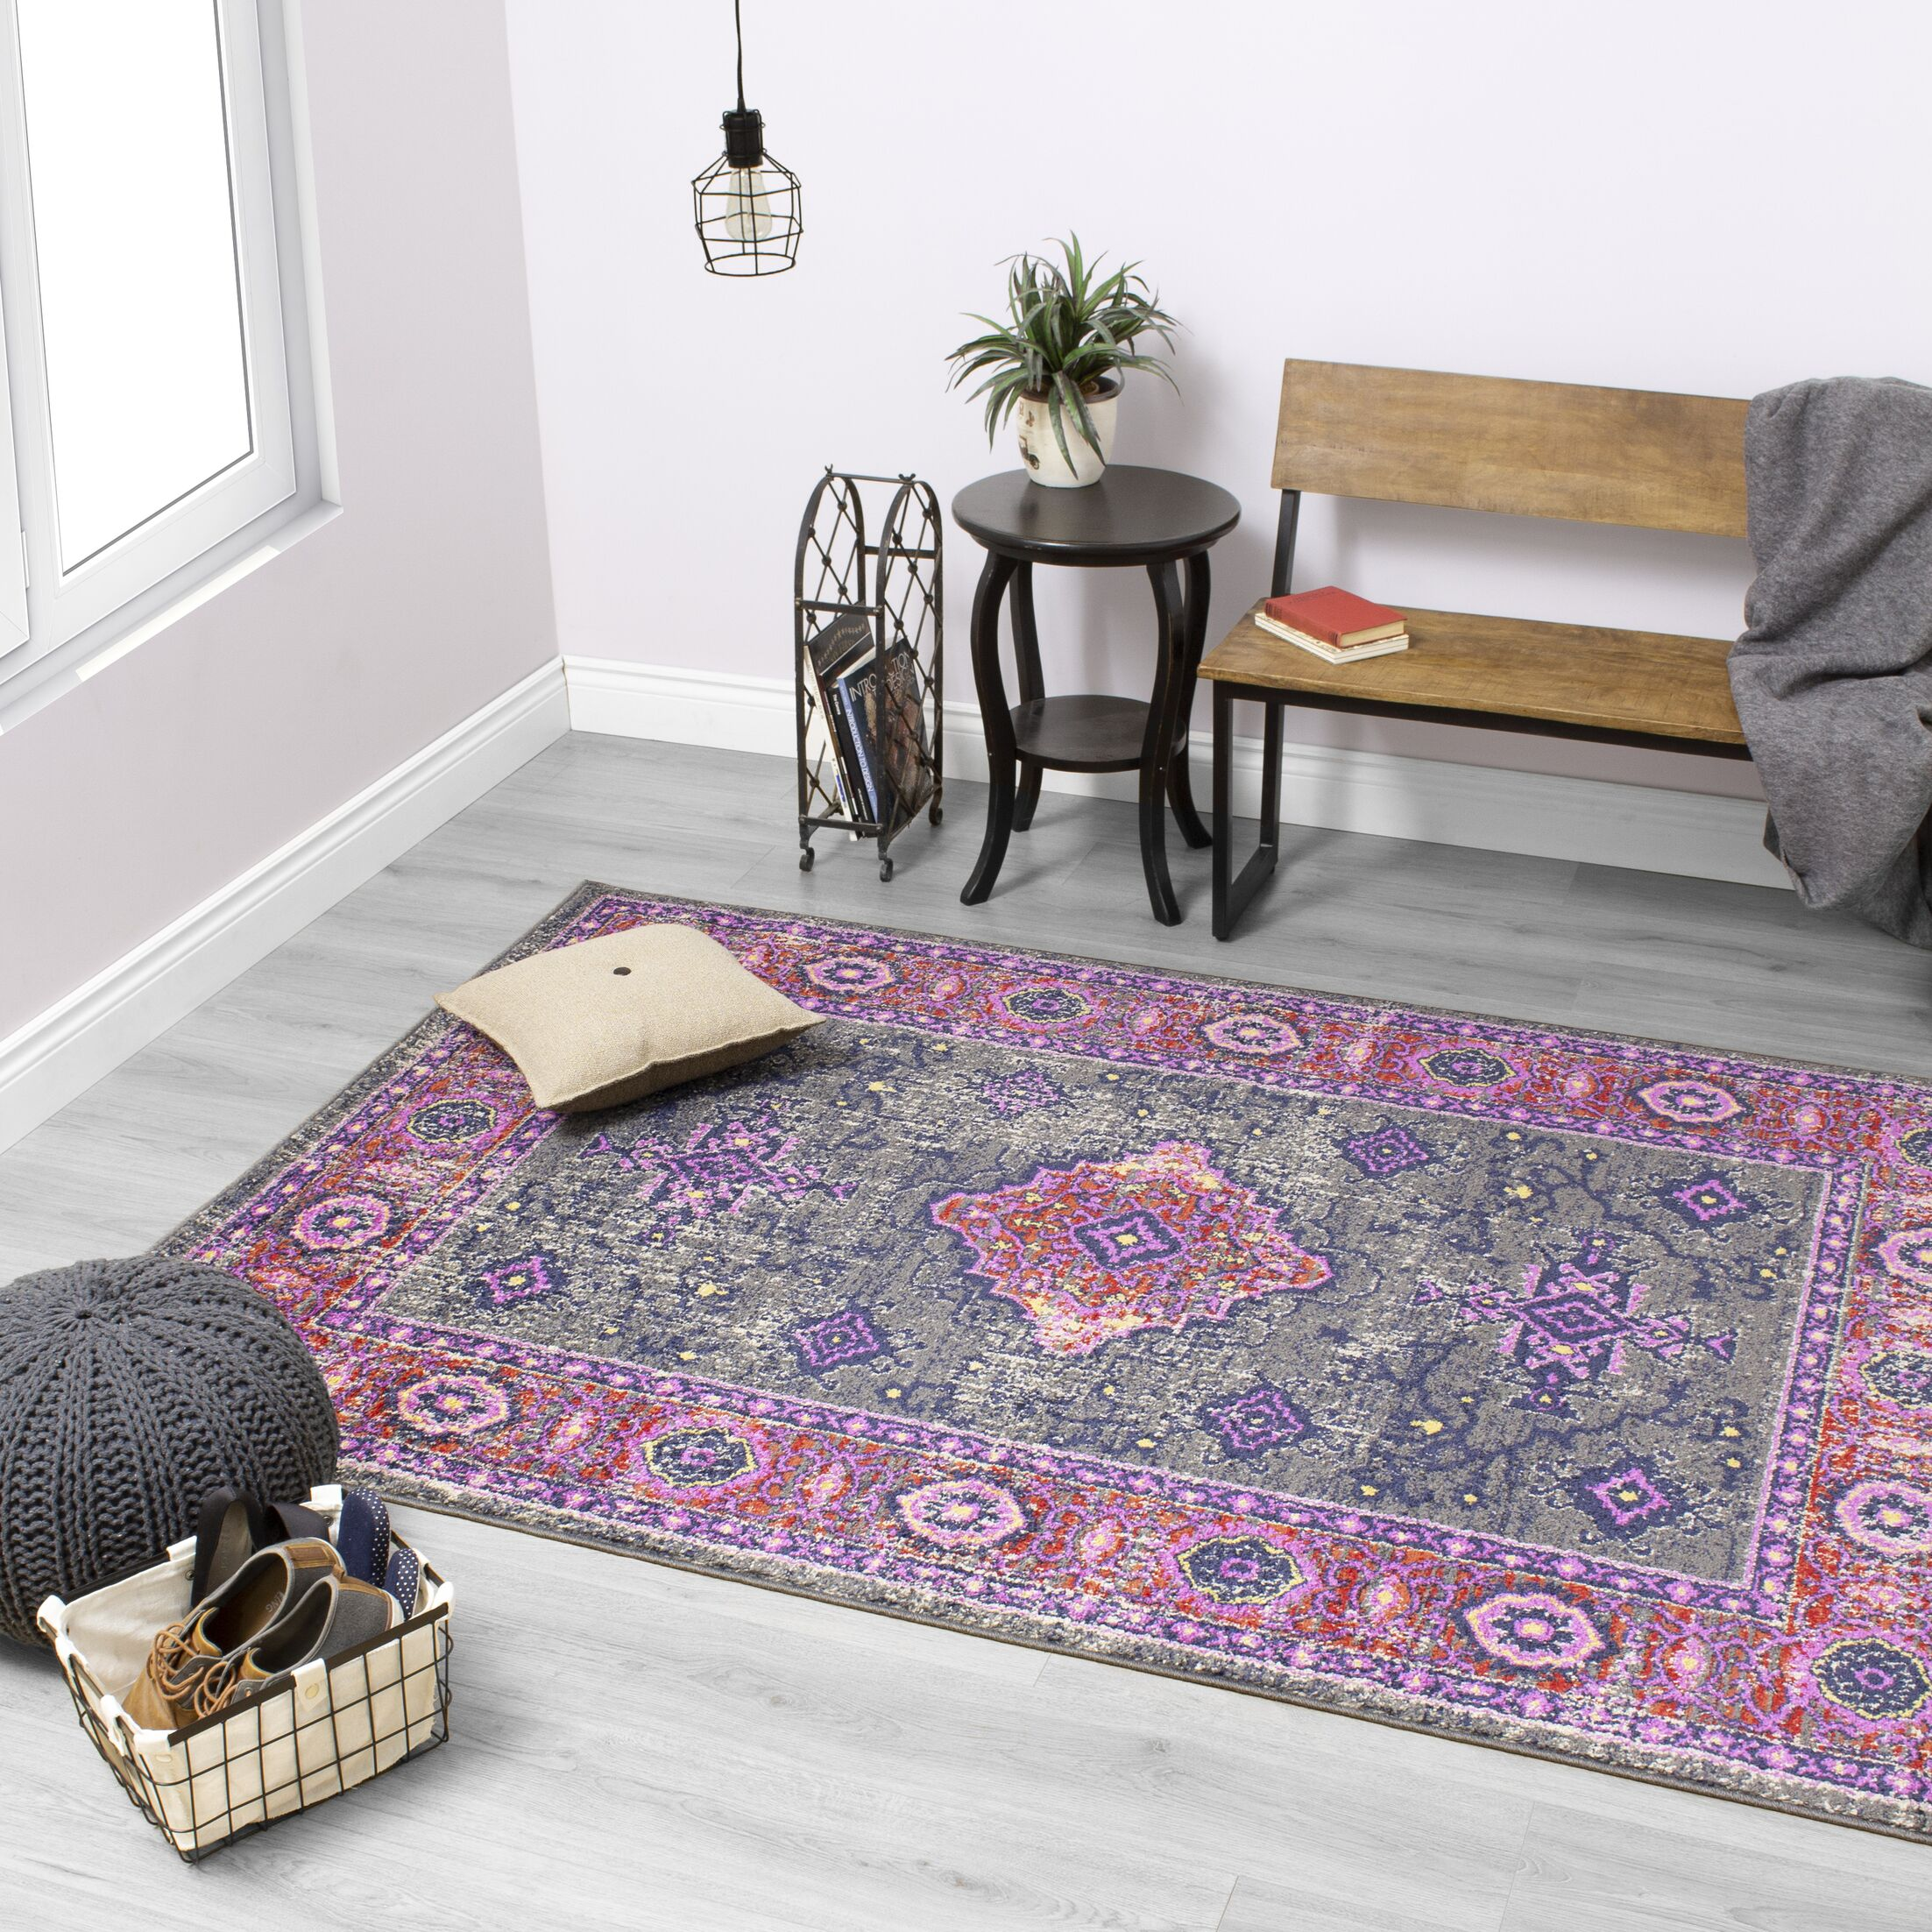 Gabriella Medallion Border Pink/Gray Area Rug Rug Size: Rectangle 7'10'' x 10'6''